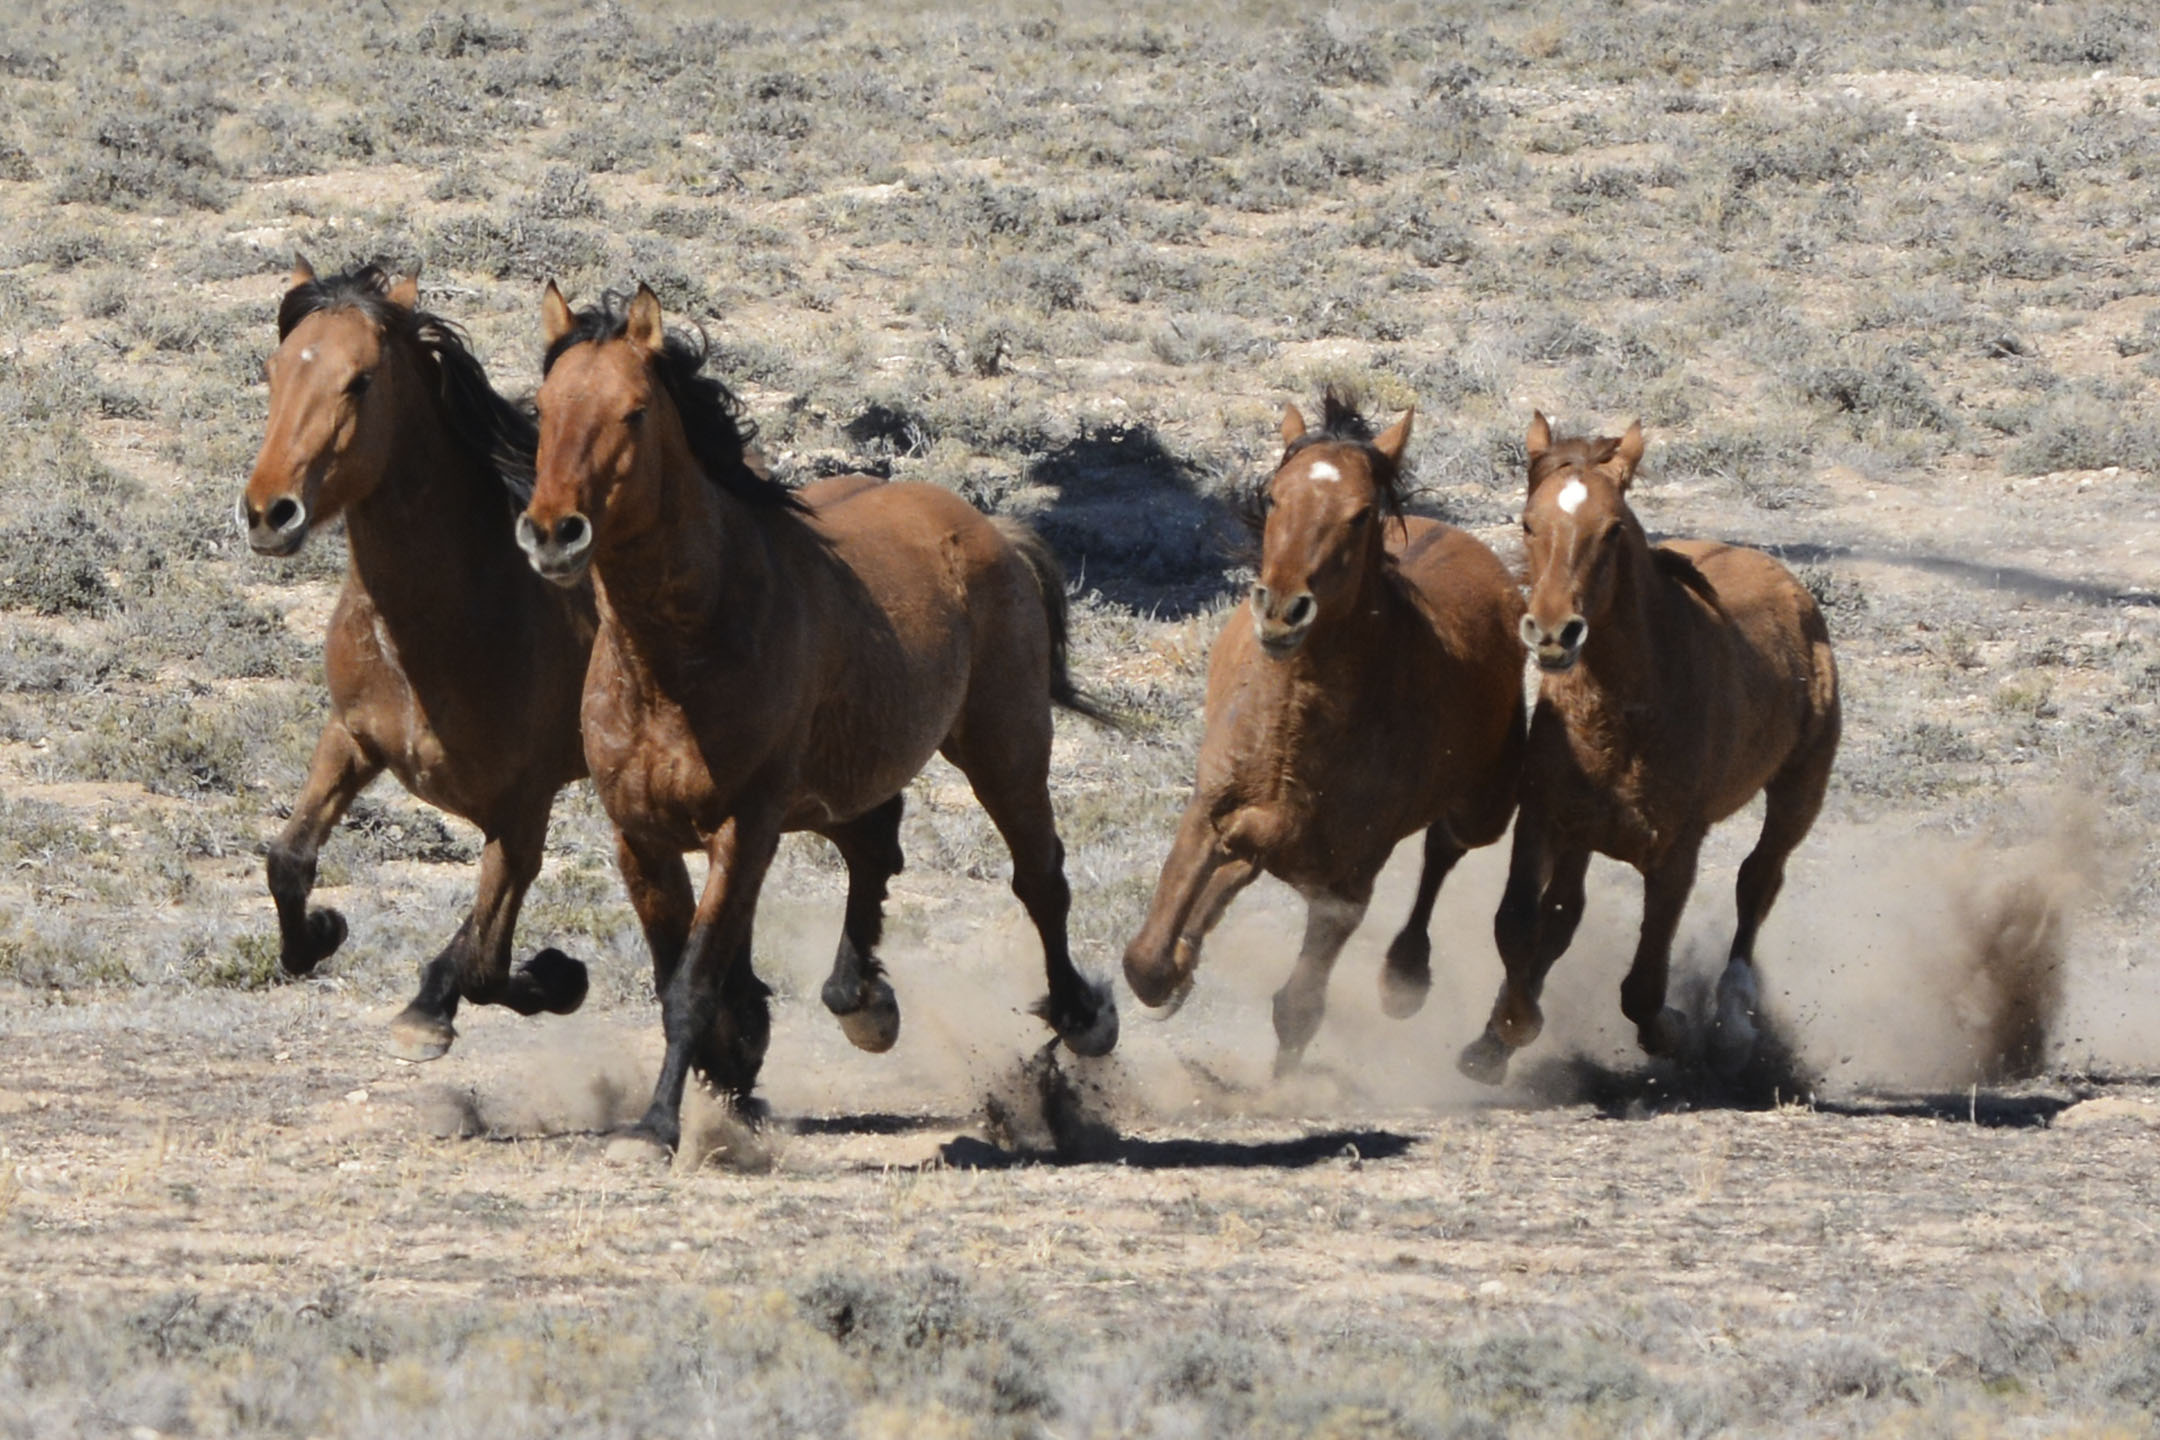 (Courtesy  |  Chad Douglas, BLM)  Bureau of Land Management officials rounded up 103 horses from the Sulphur Herd Management Area. Two wild horses perished during the roundup and two domestic horses were also captured during the event.